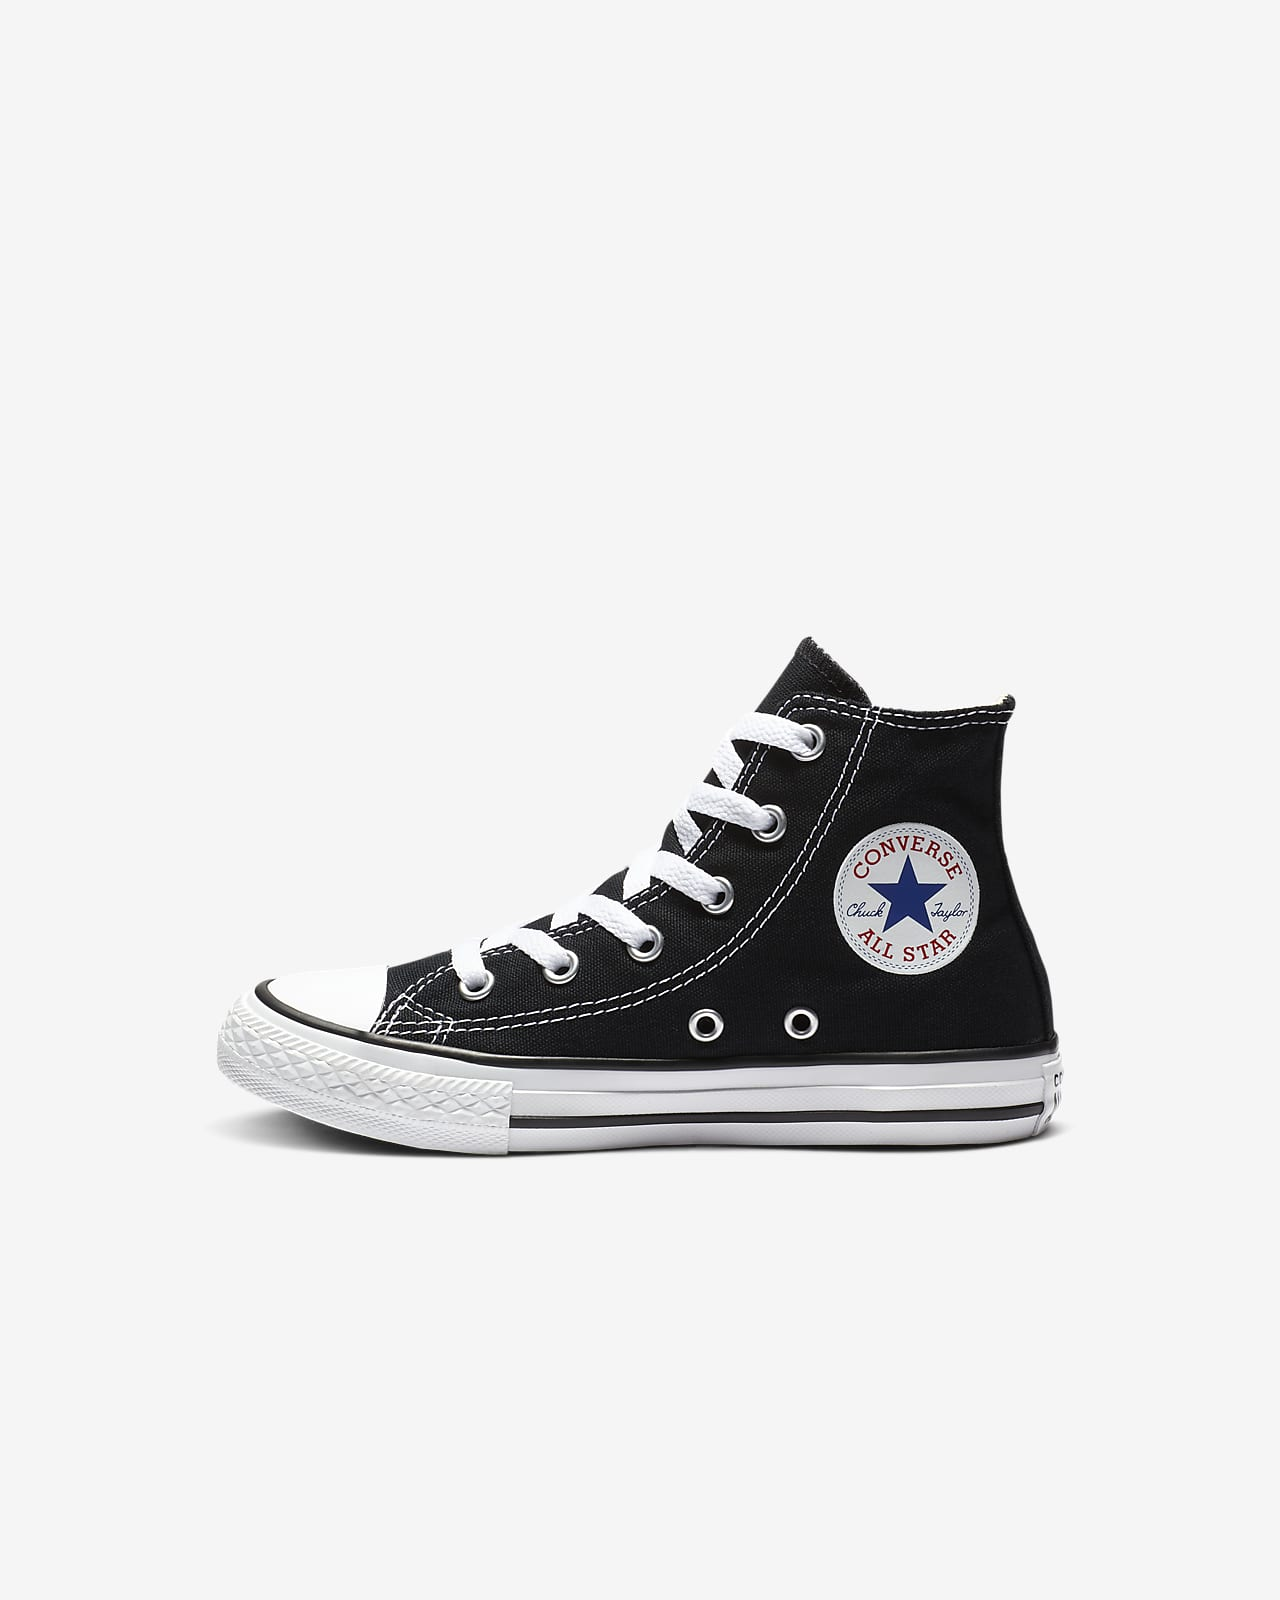 converse taylor all star high top